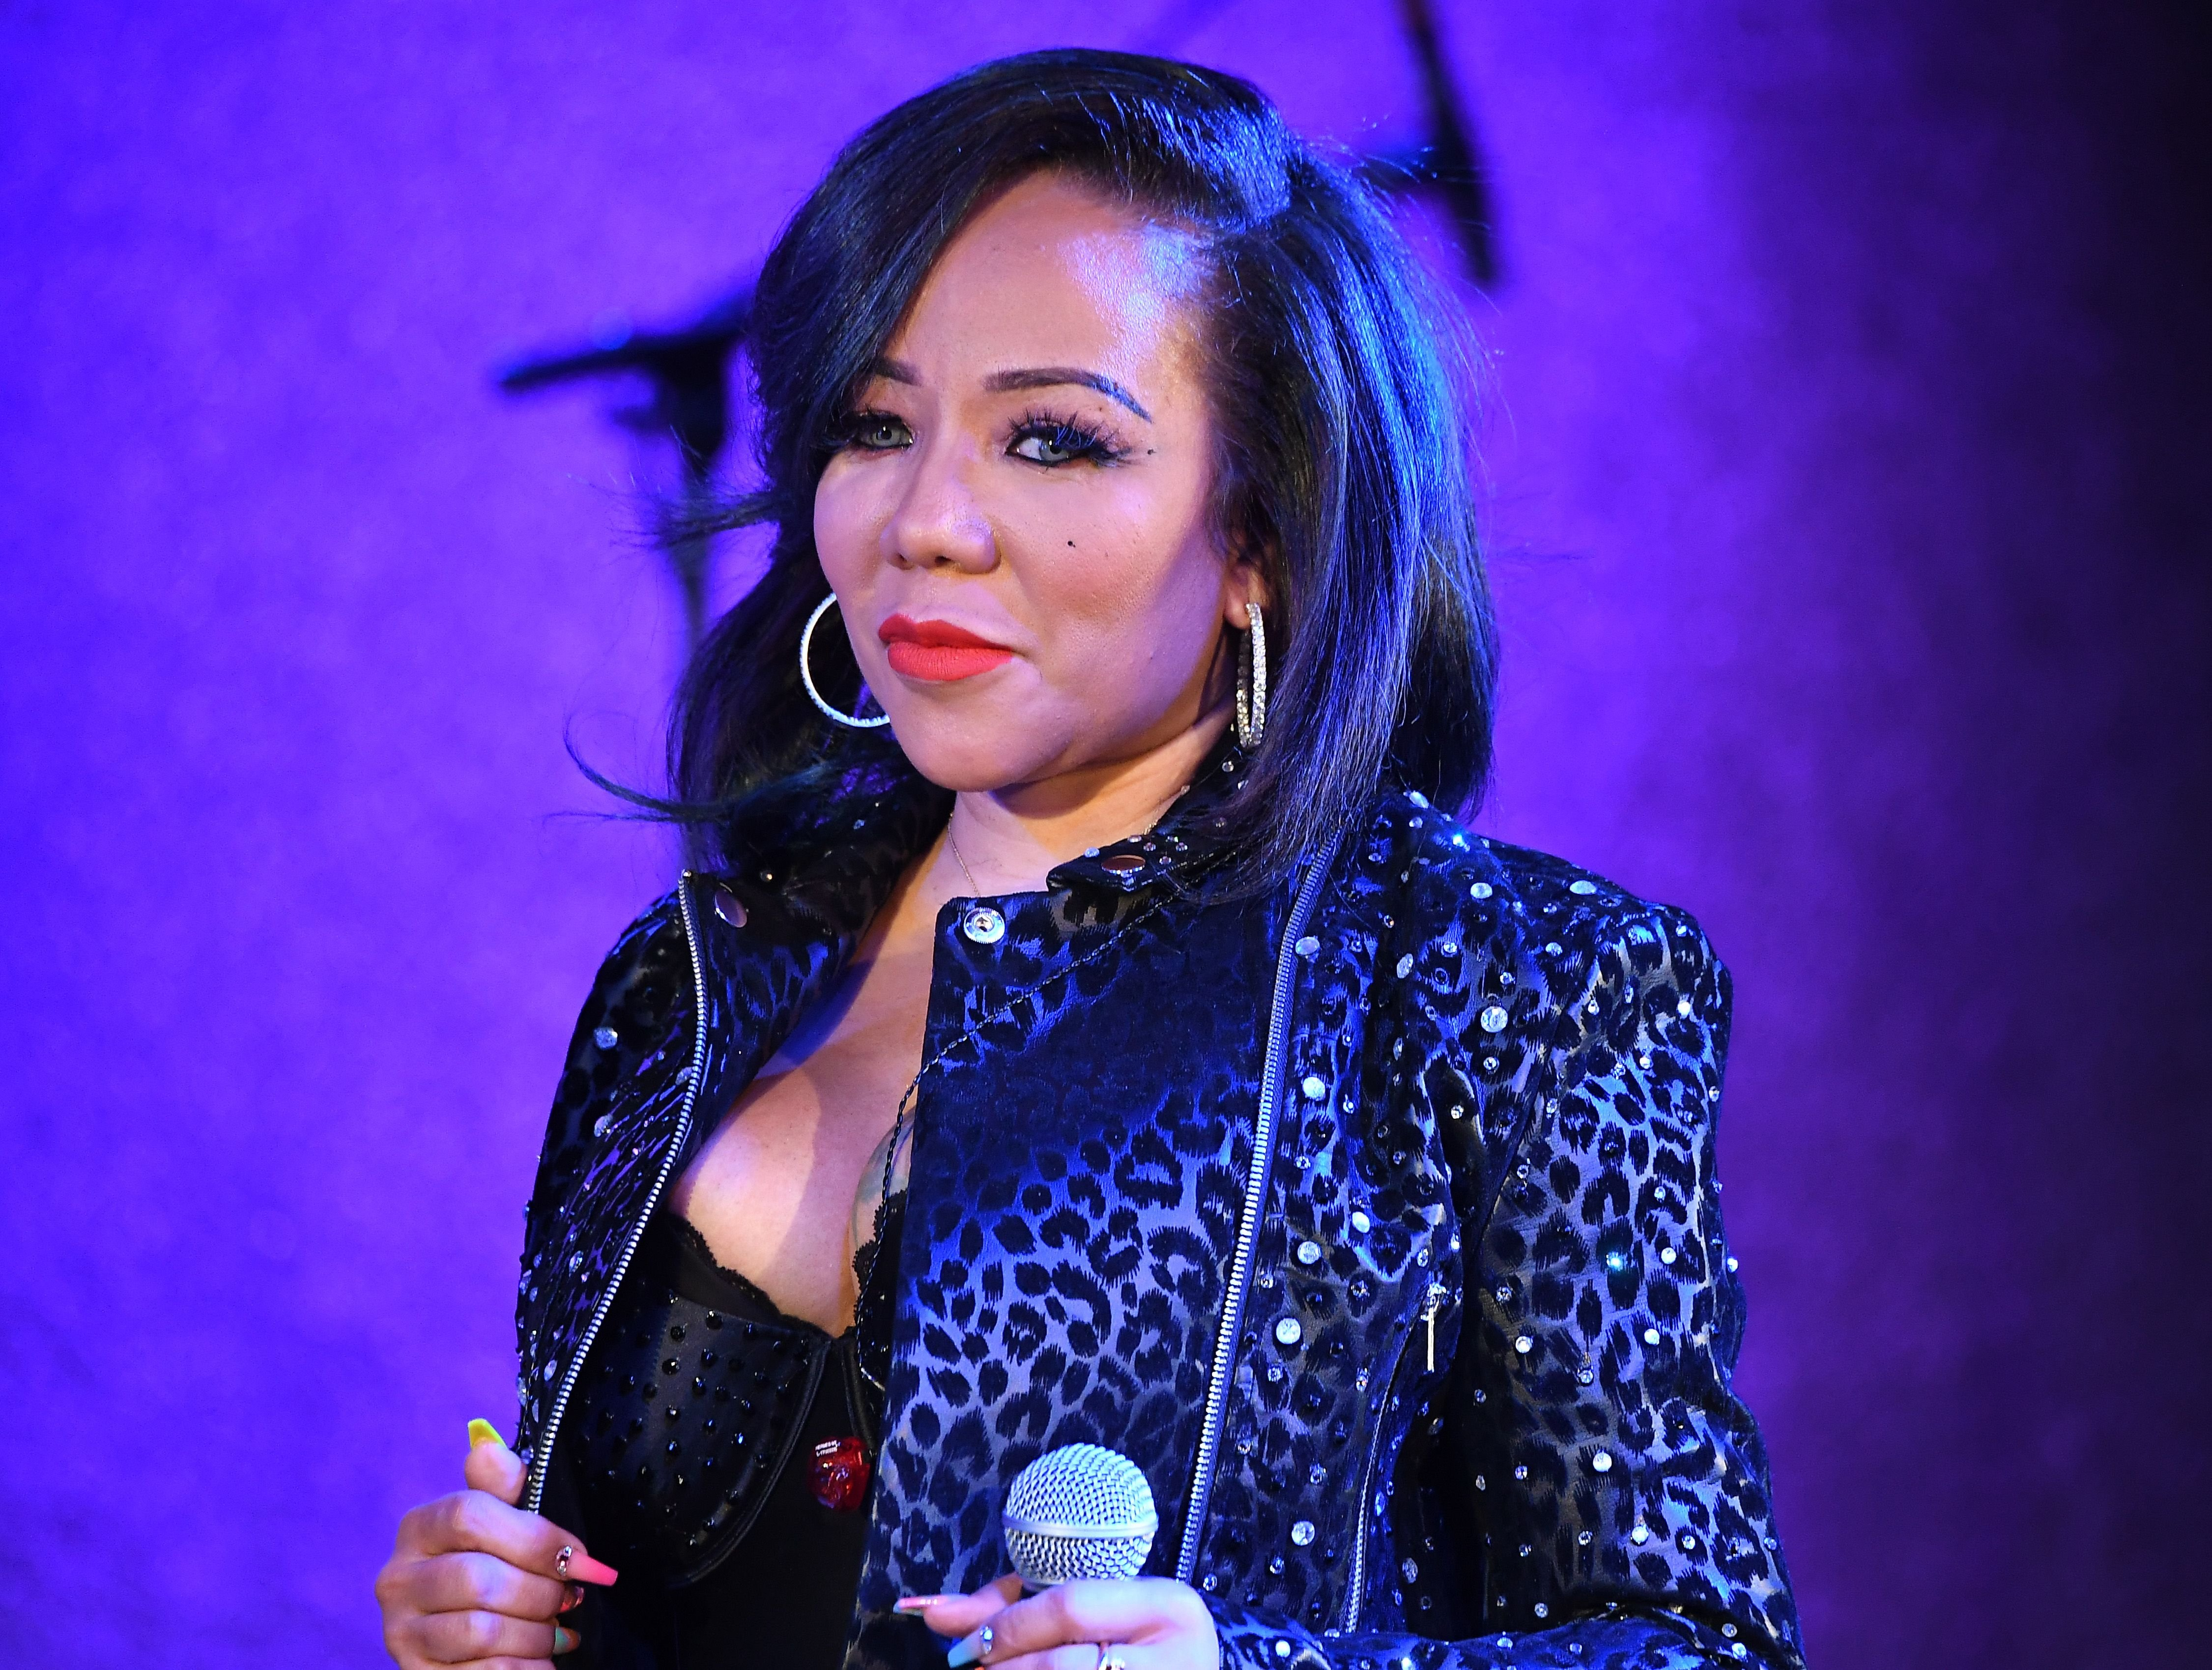 """Tameka """"Tiny"""" Harris speaks onstage at Majic 107.5 After Dark at City Winery on September 03, 2019 